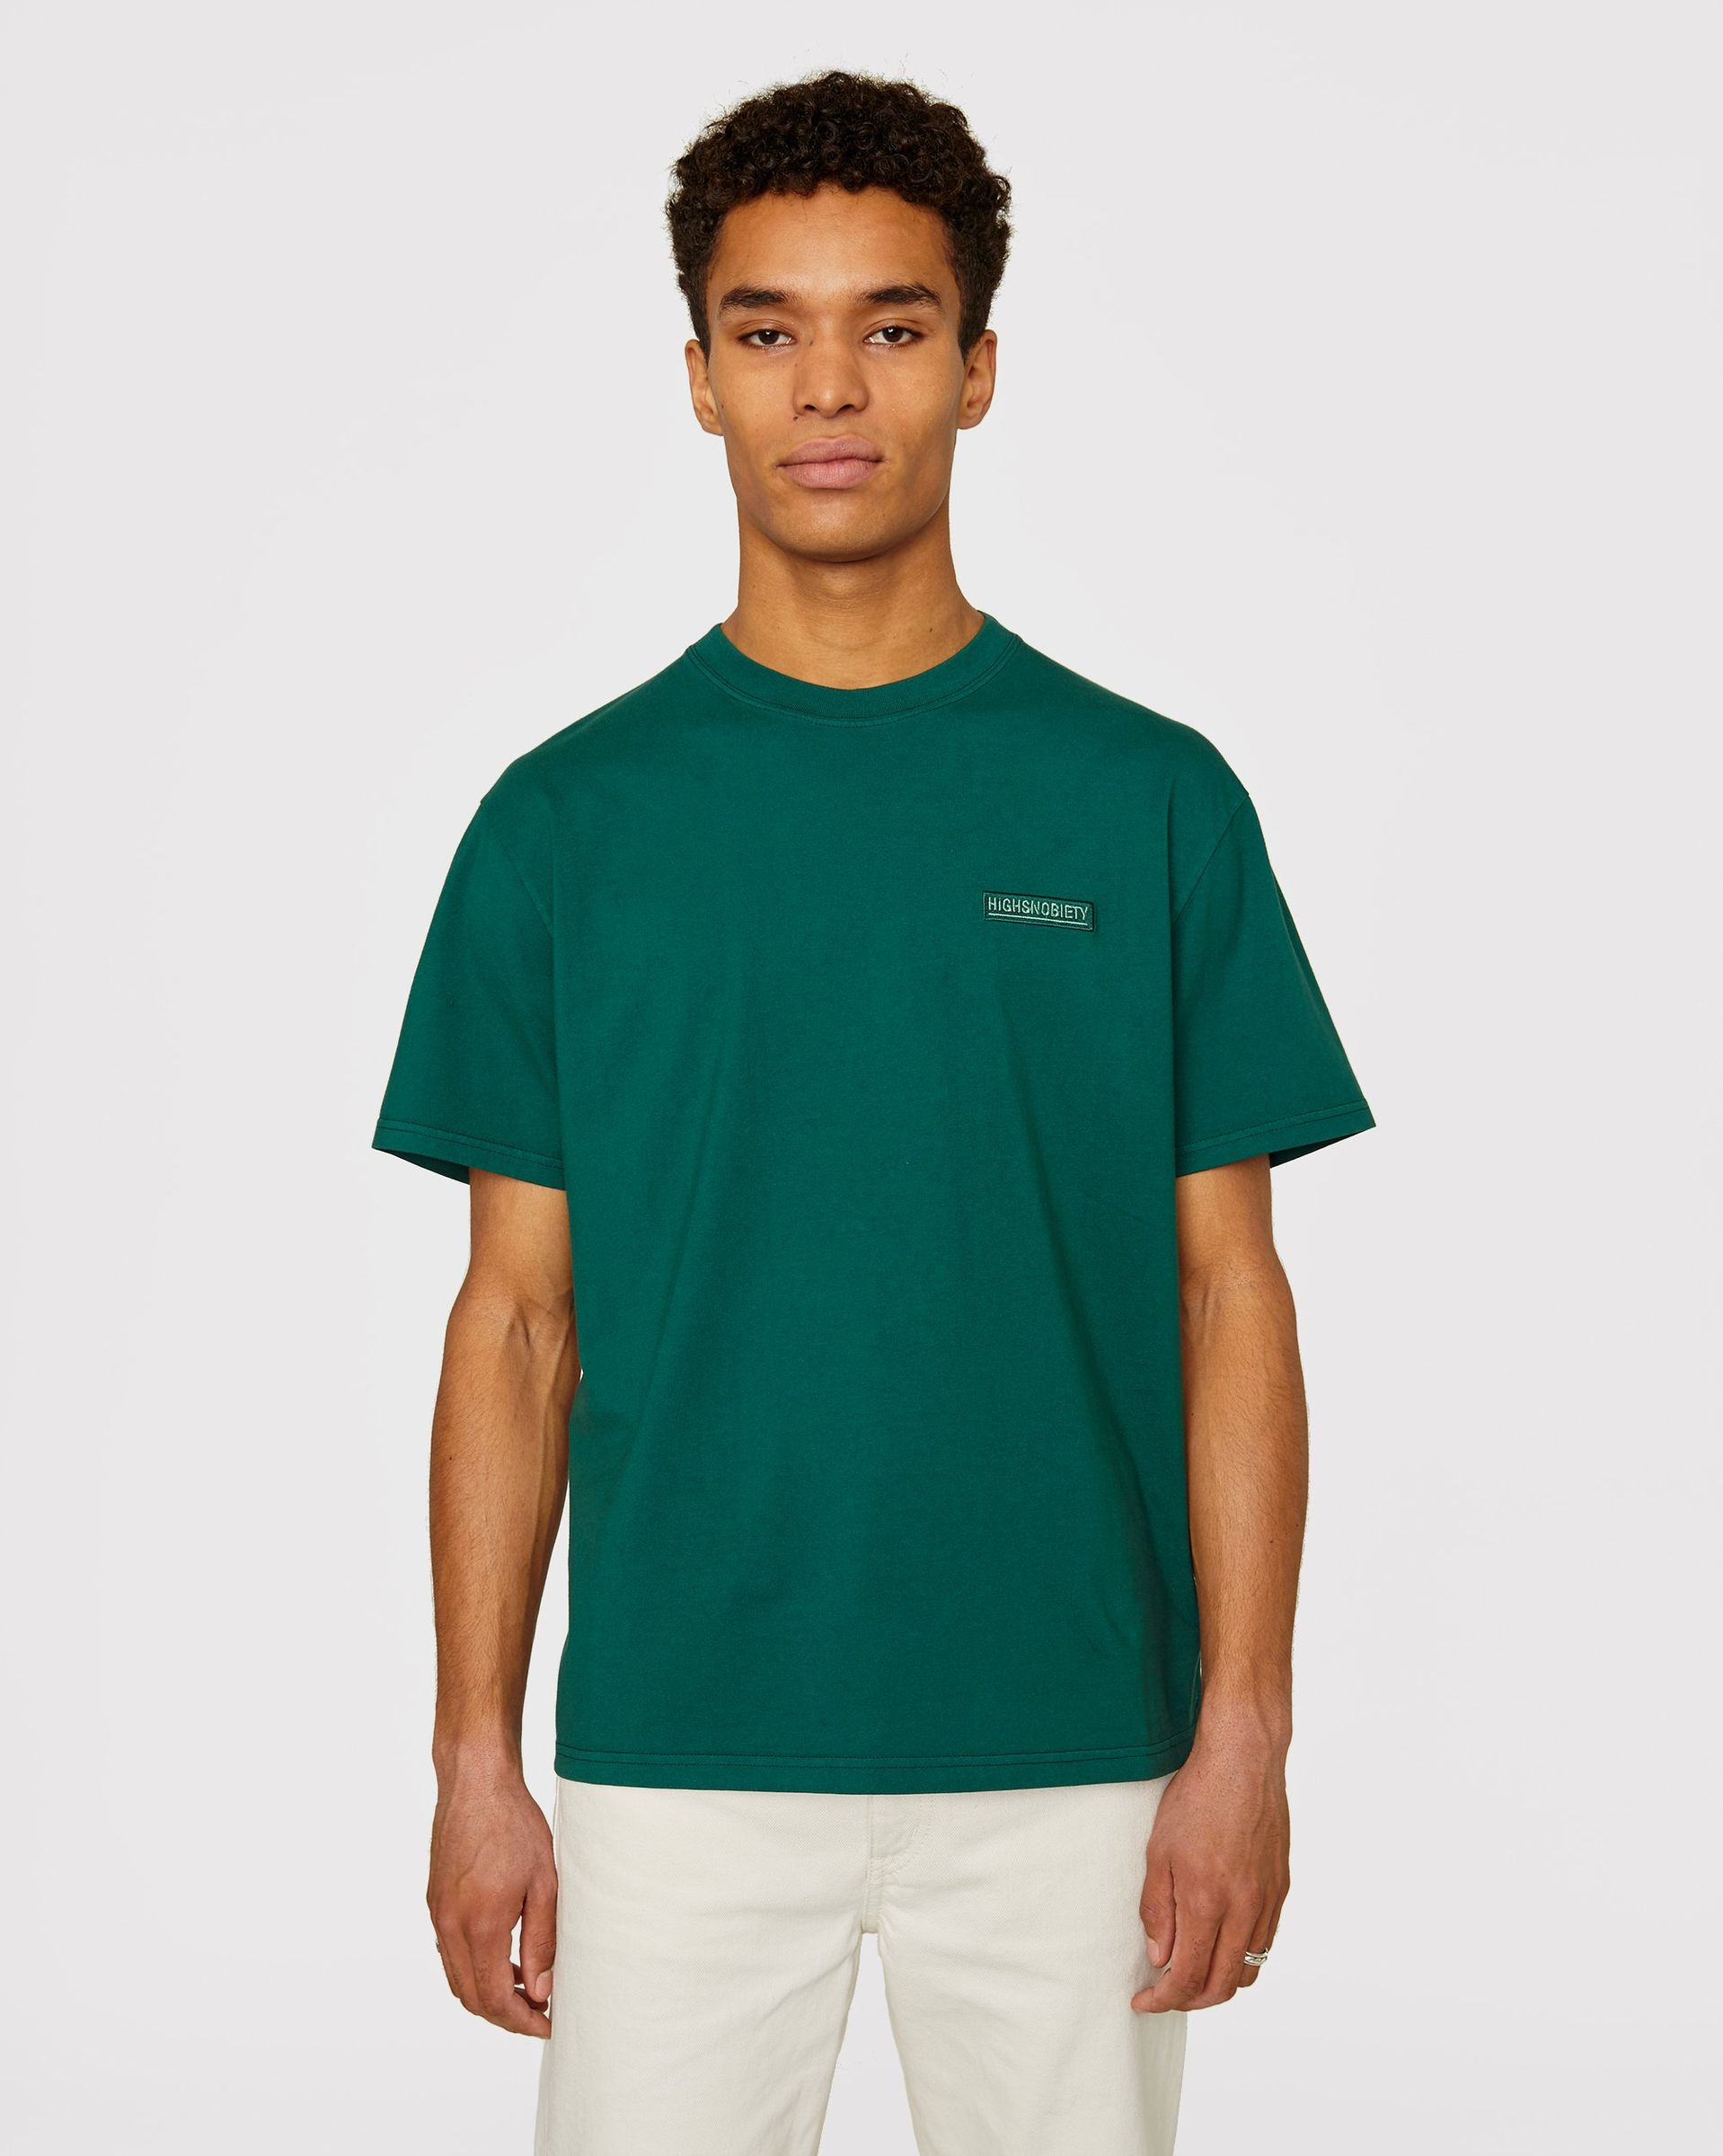 Highsnobiety Staples - T-Shirt Green - Image 2